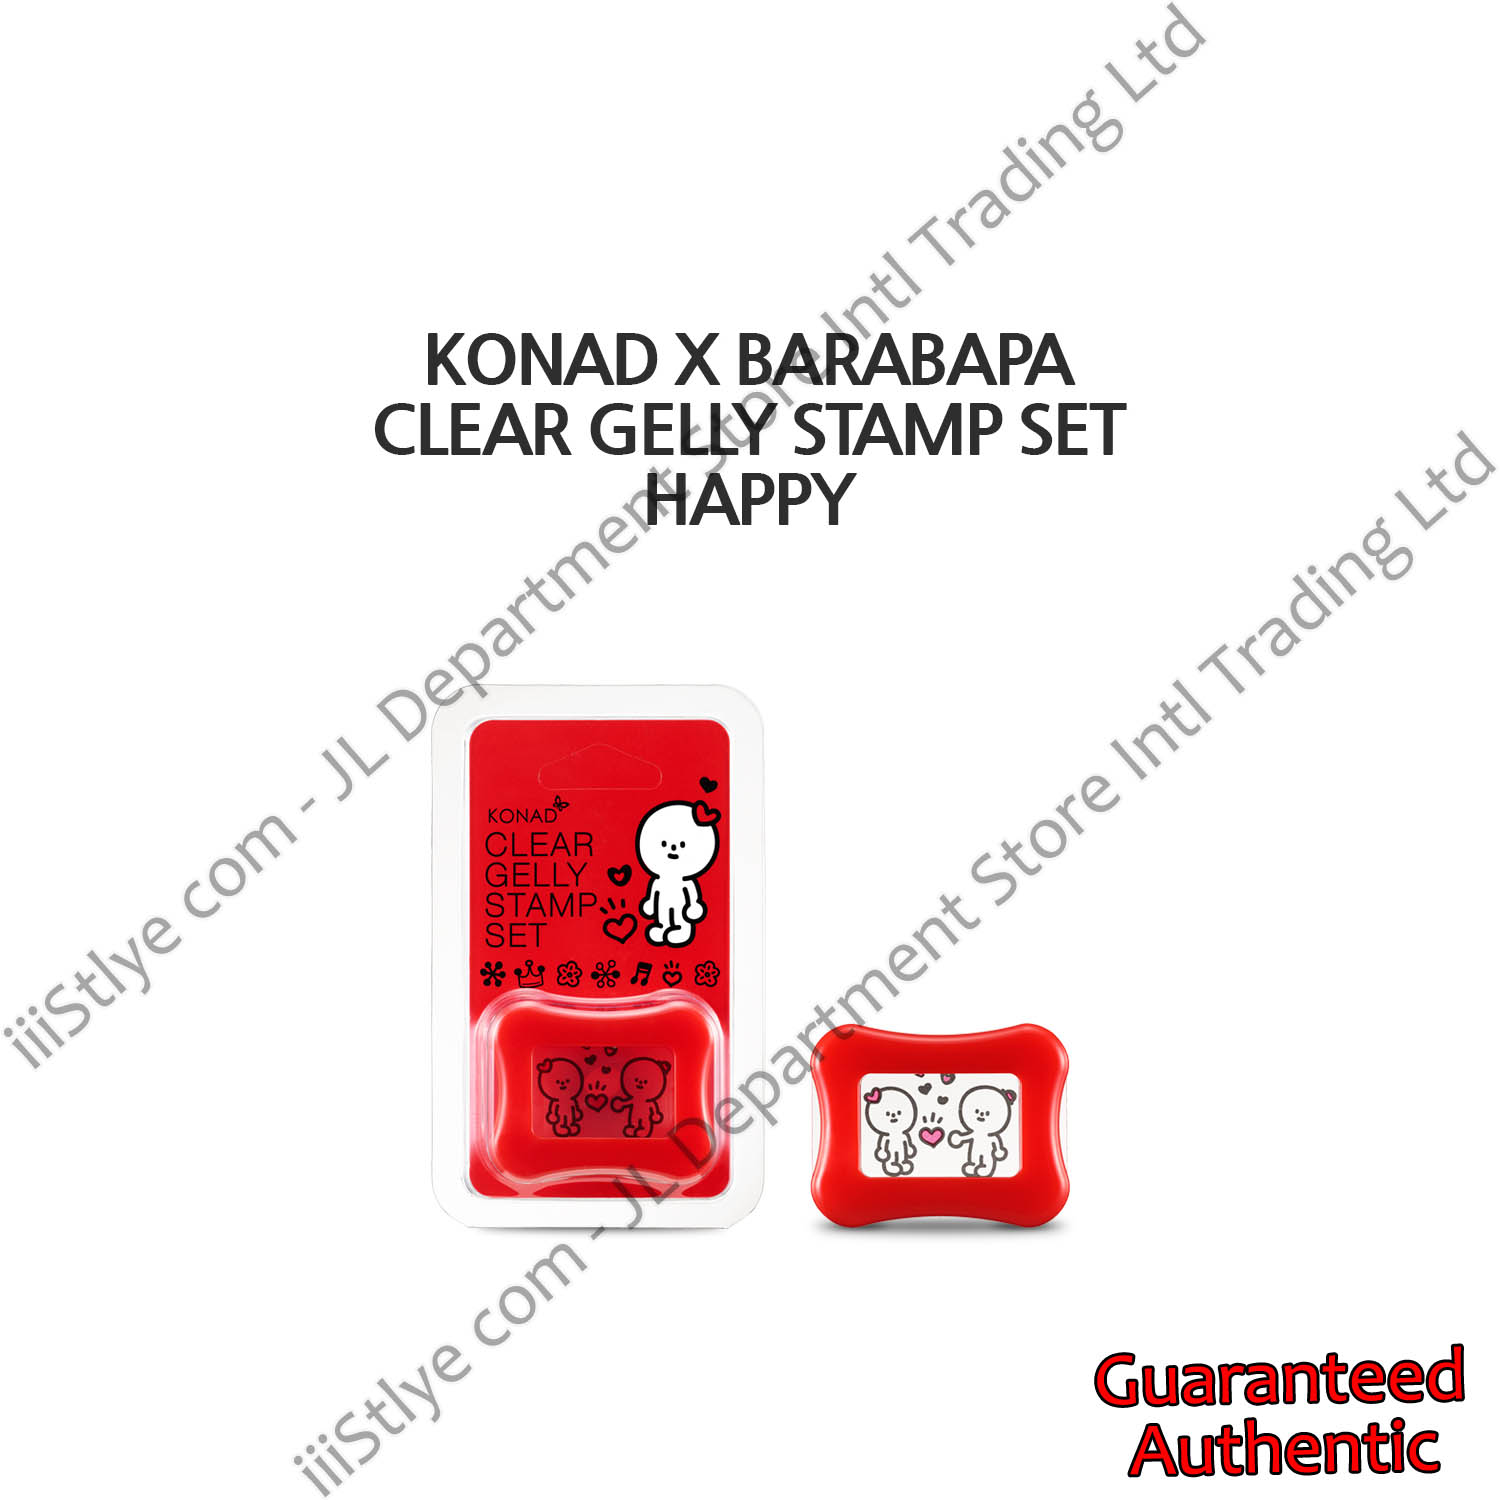 konadXbarabapa clear gelly stamp set happy